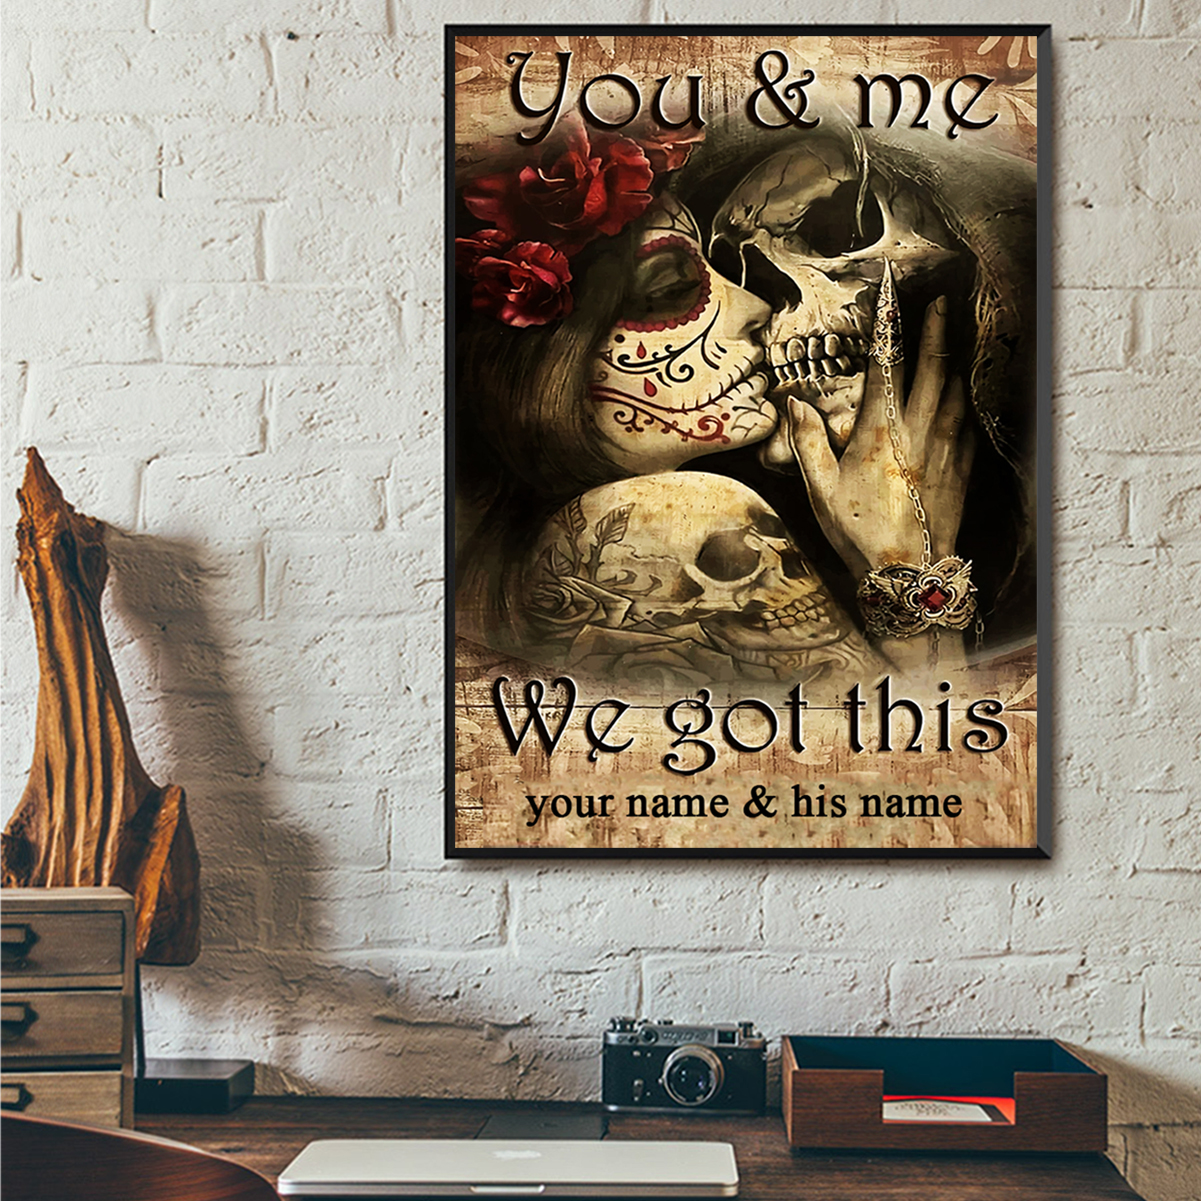 Personalized jack and sally you and me we got this poster A3